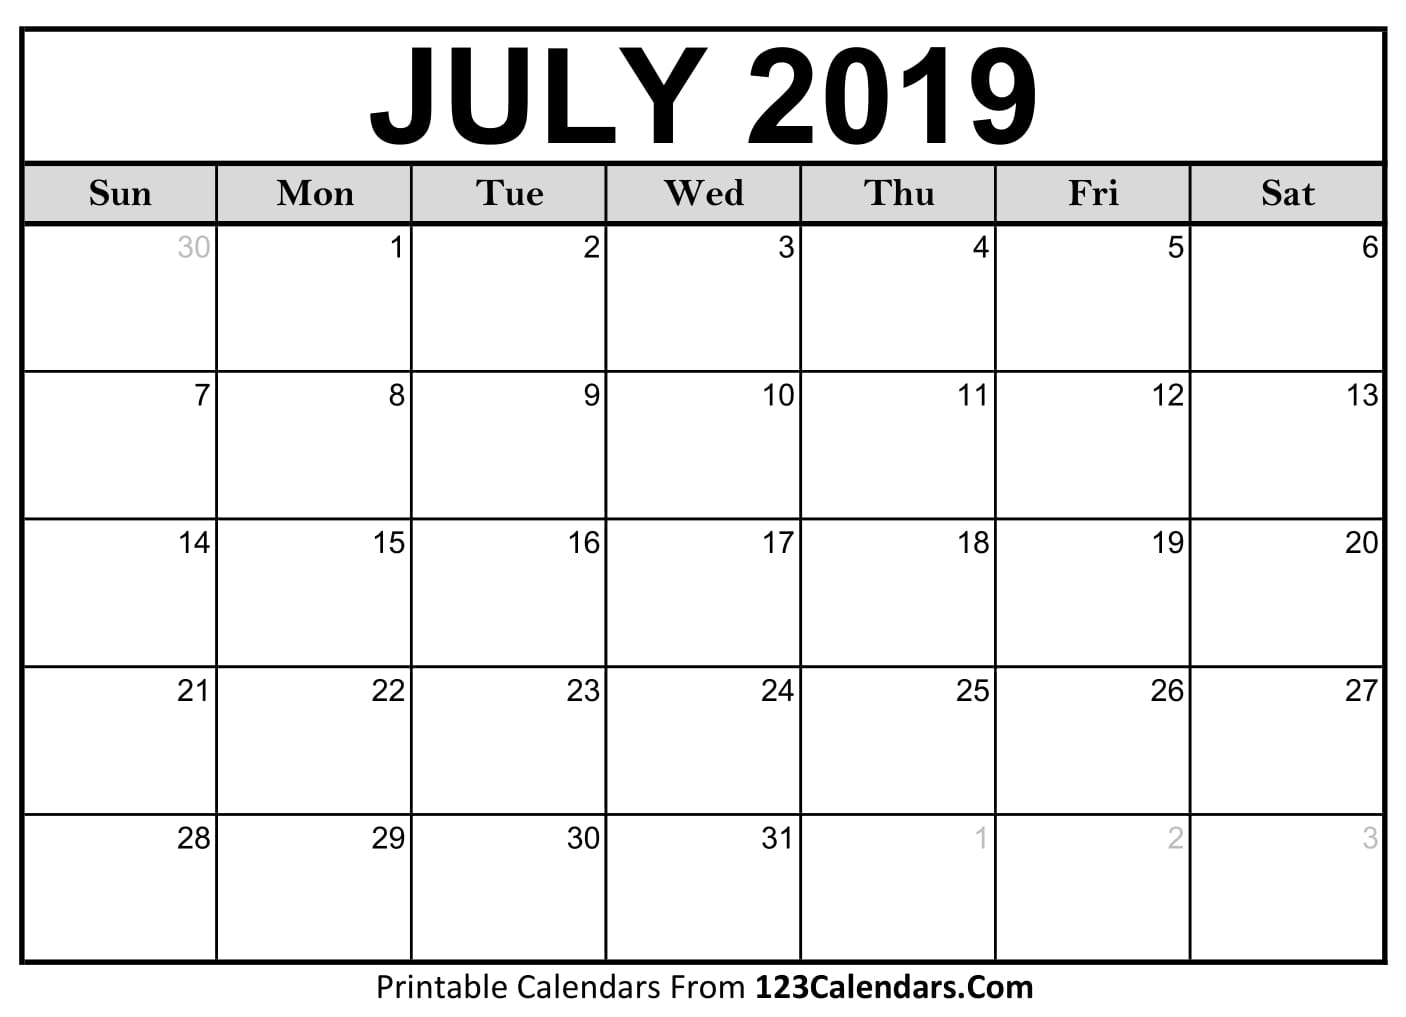 Calendar For July 2019 July 2019 Printable Calendar | 123Calendars.com